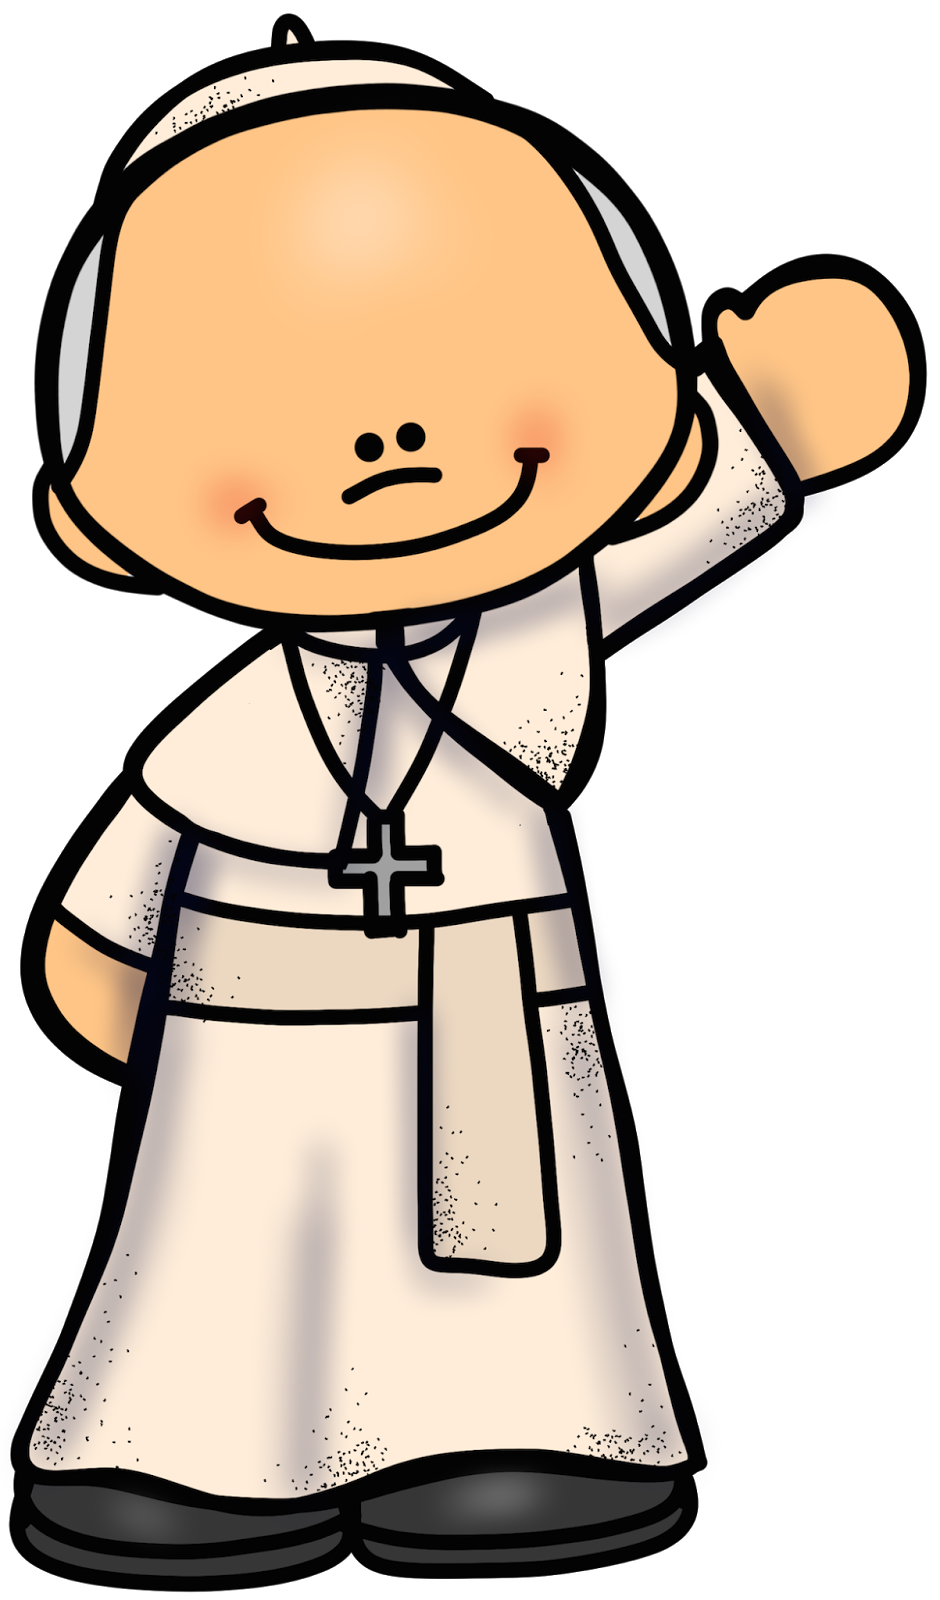 Pope clipart. Educlips design free graphic